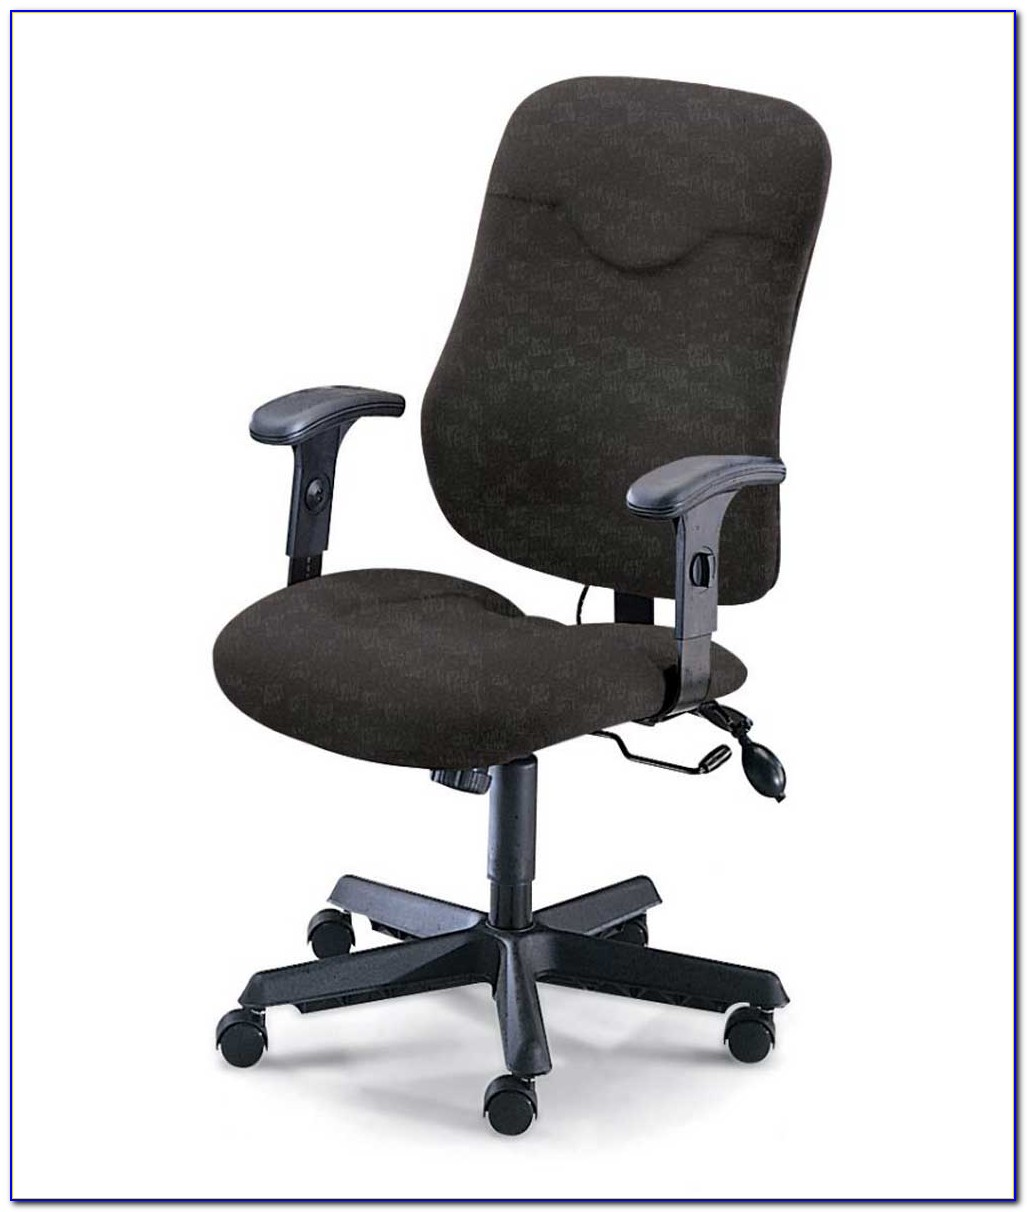 Chair For Back Pain Relief India